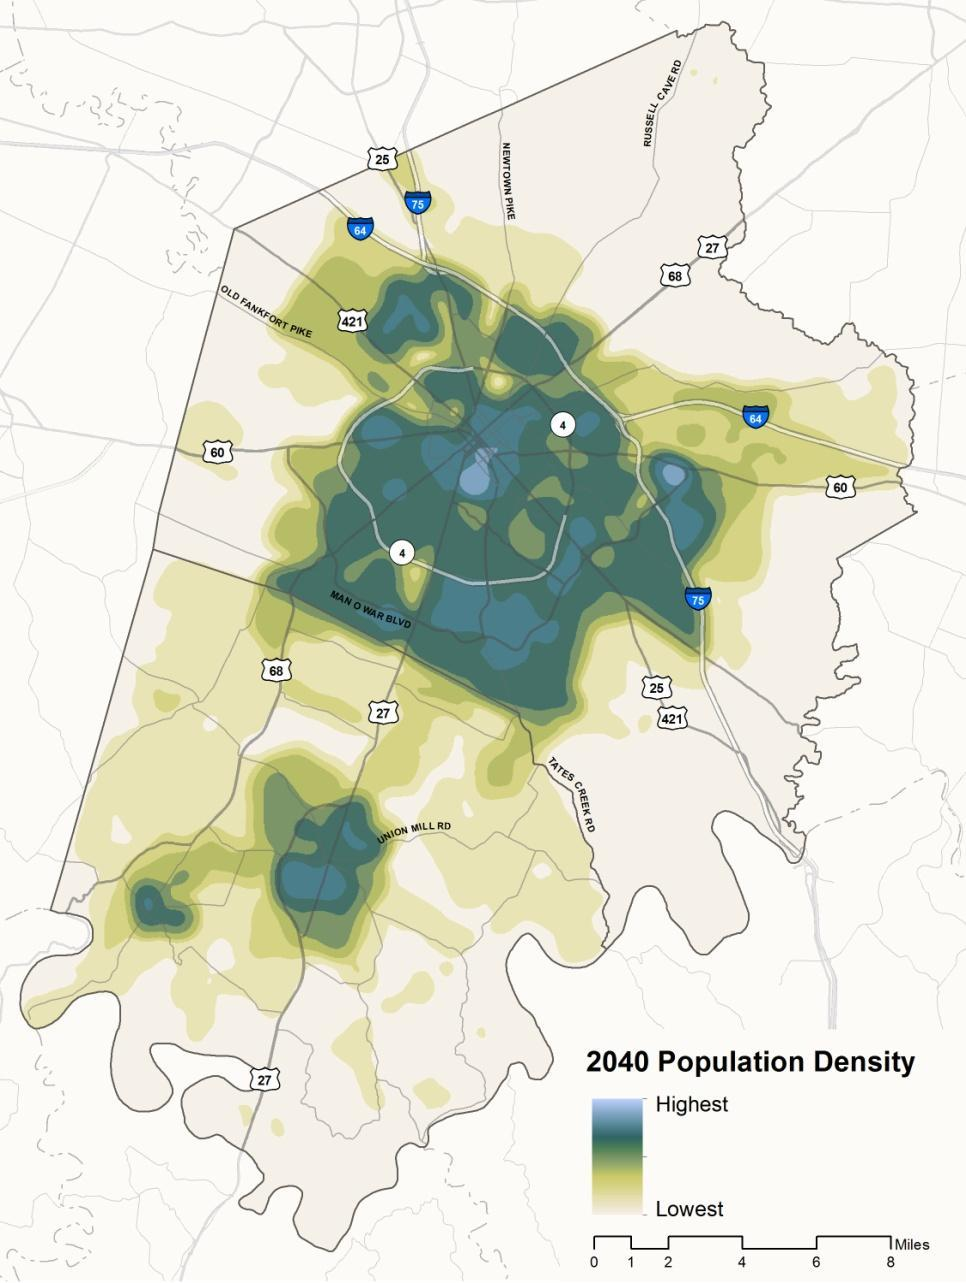 Over the last several decades, the MPO s population has increased by nearly 45,000 people for each 10-yr census period, equivalent to a 35% increase in residents from 1990 to 2010.